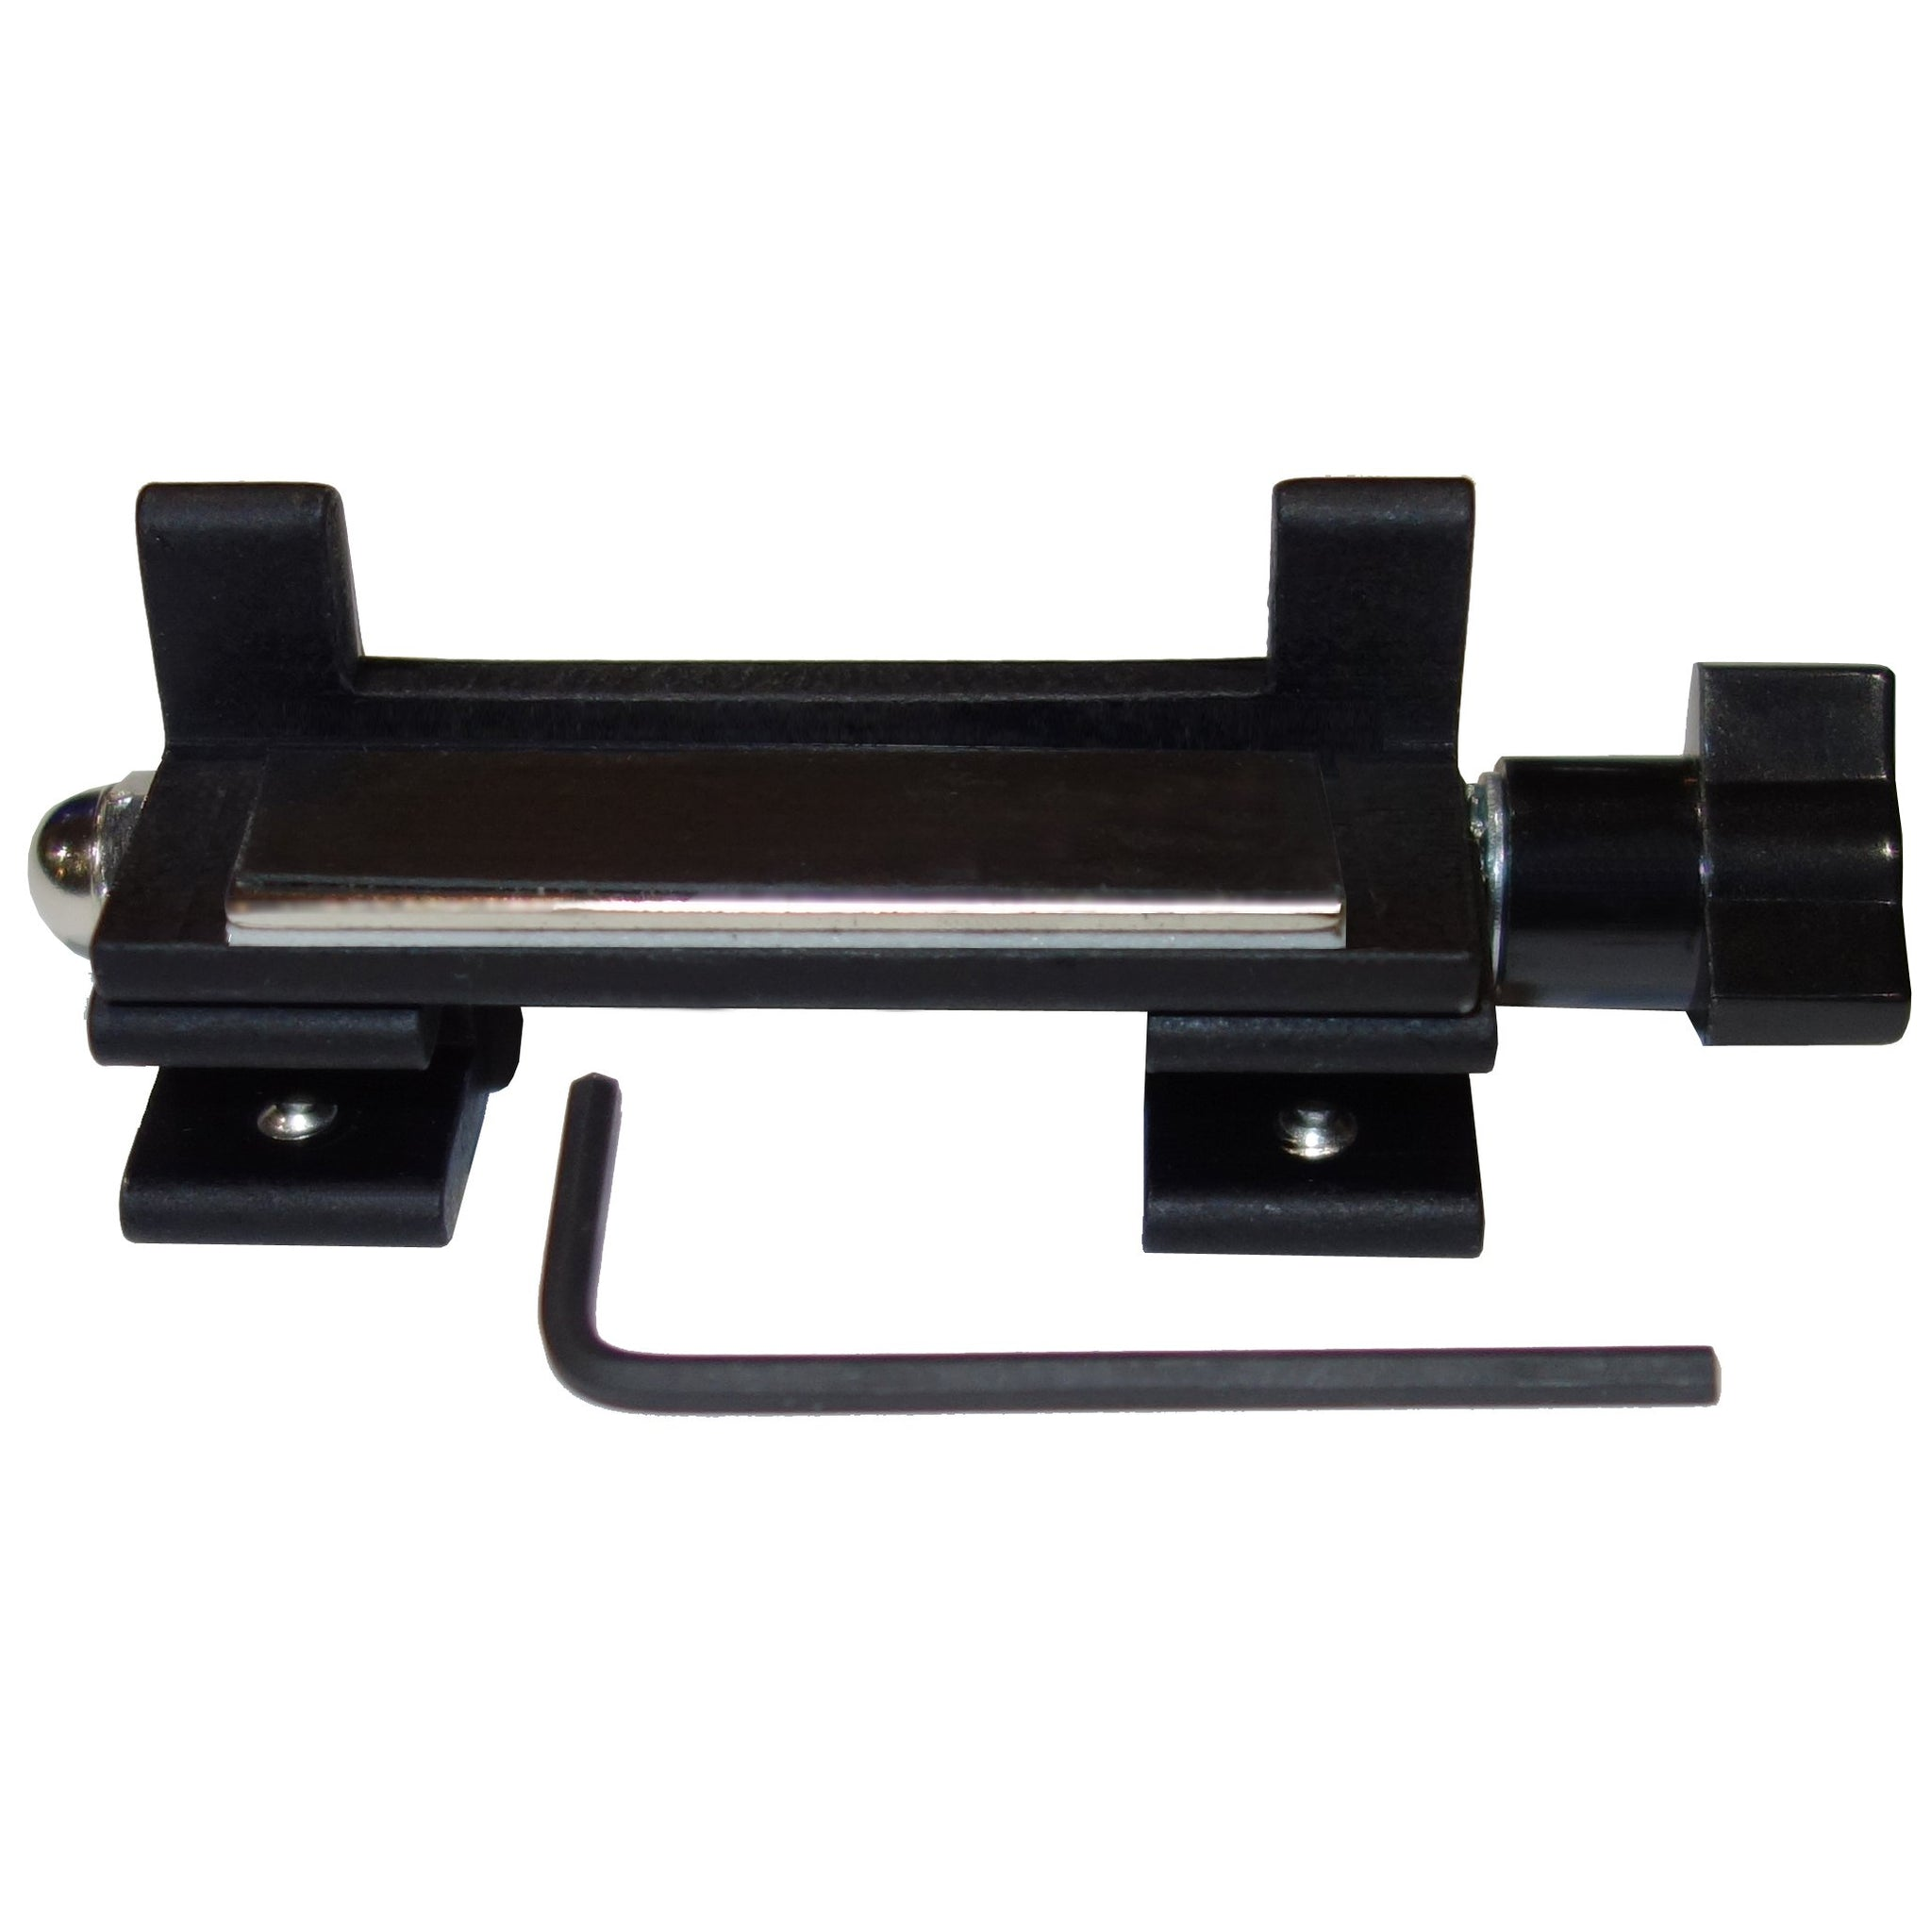 Shop online for Harp Arm Harp Flight Magnetic Harmonica Holder today. Now available for purchase from Midlothian Music of Orland Park, Illinois, USA